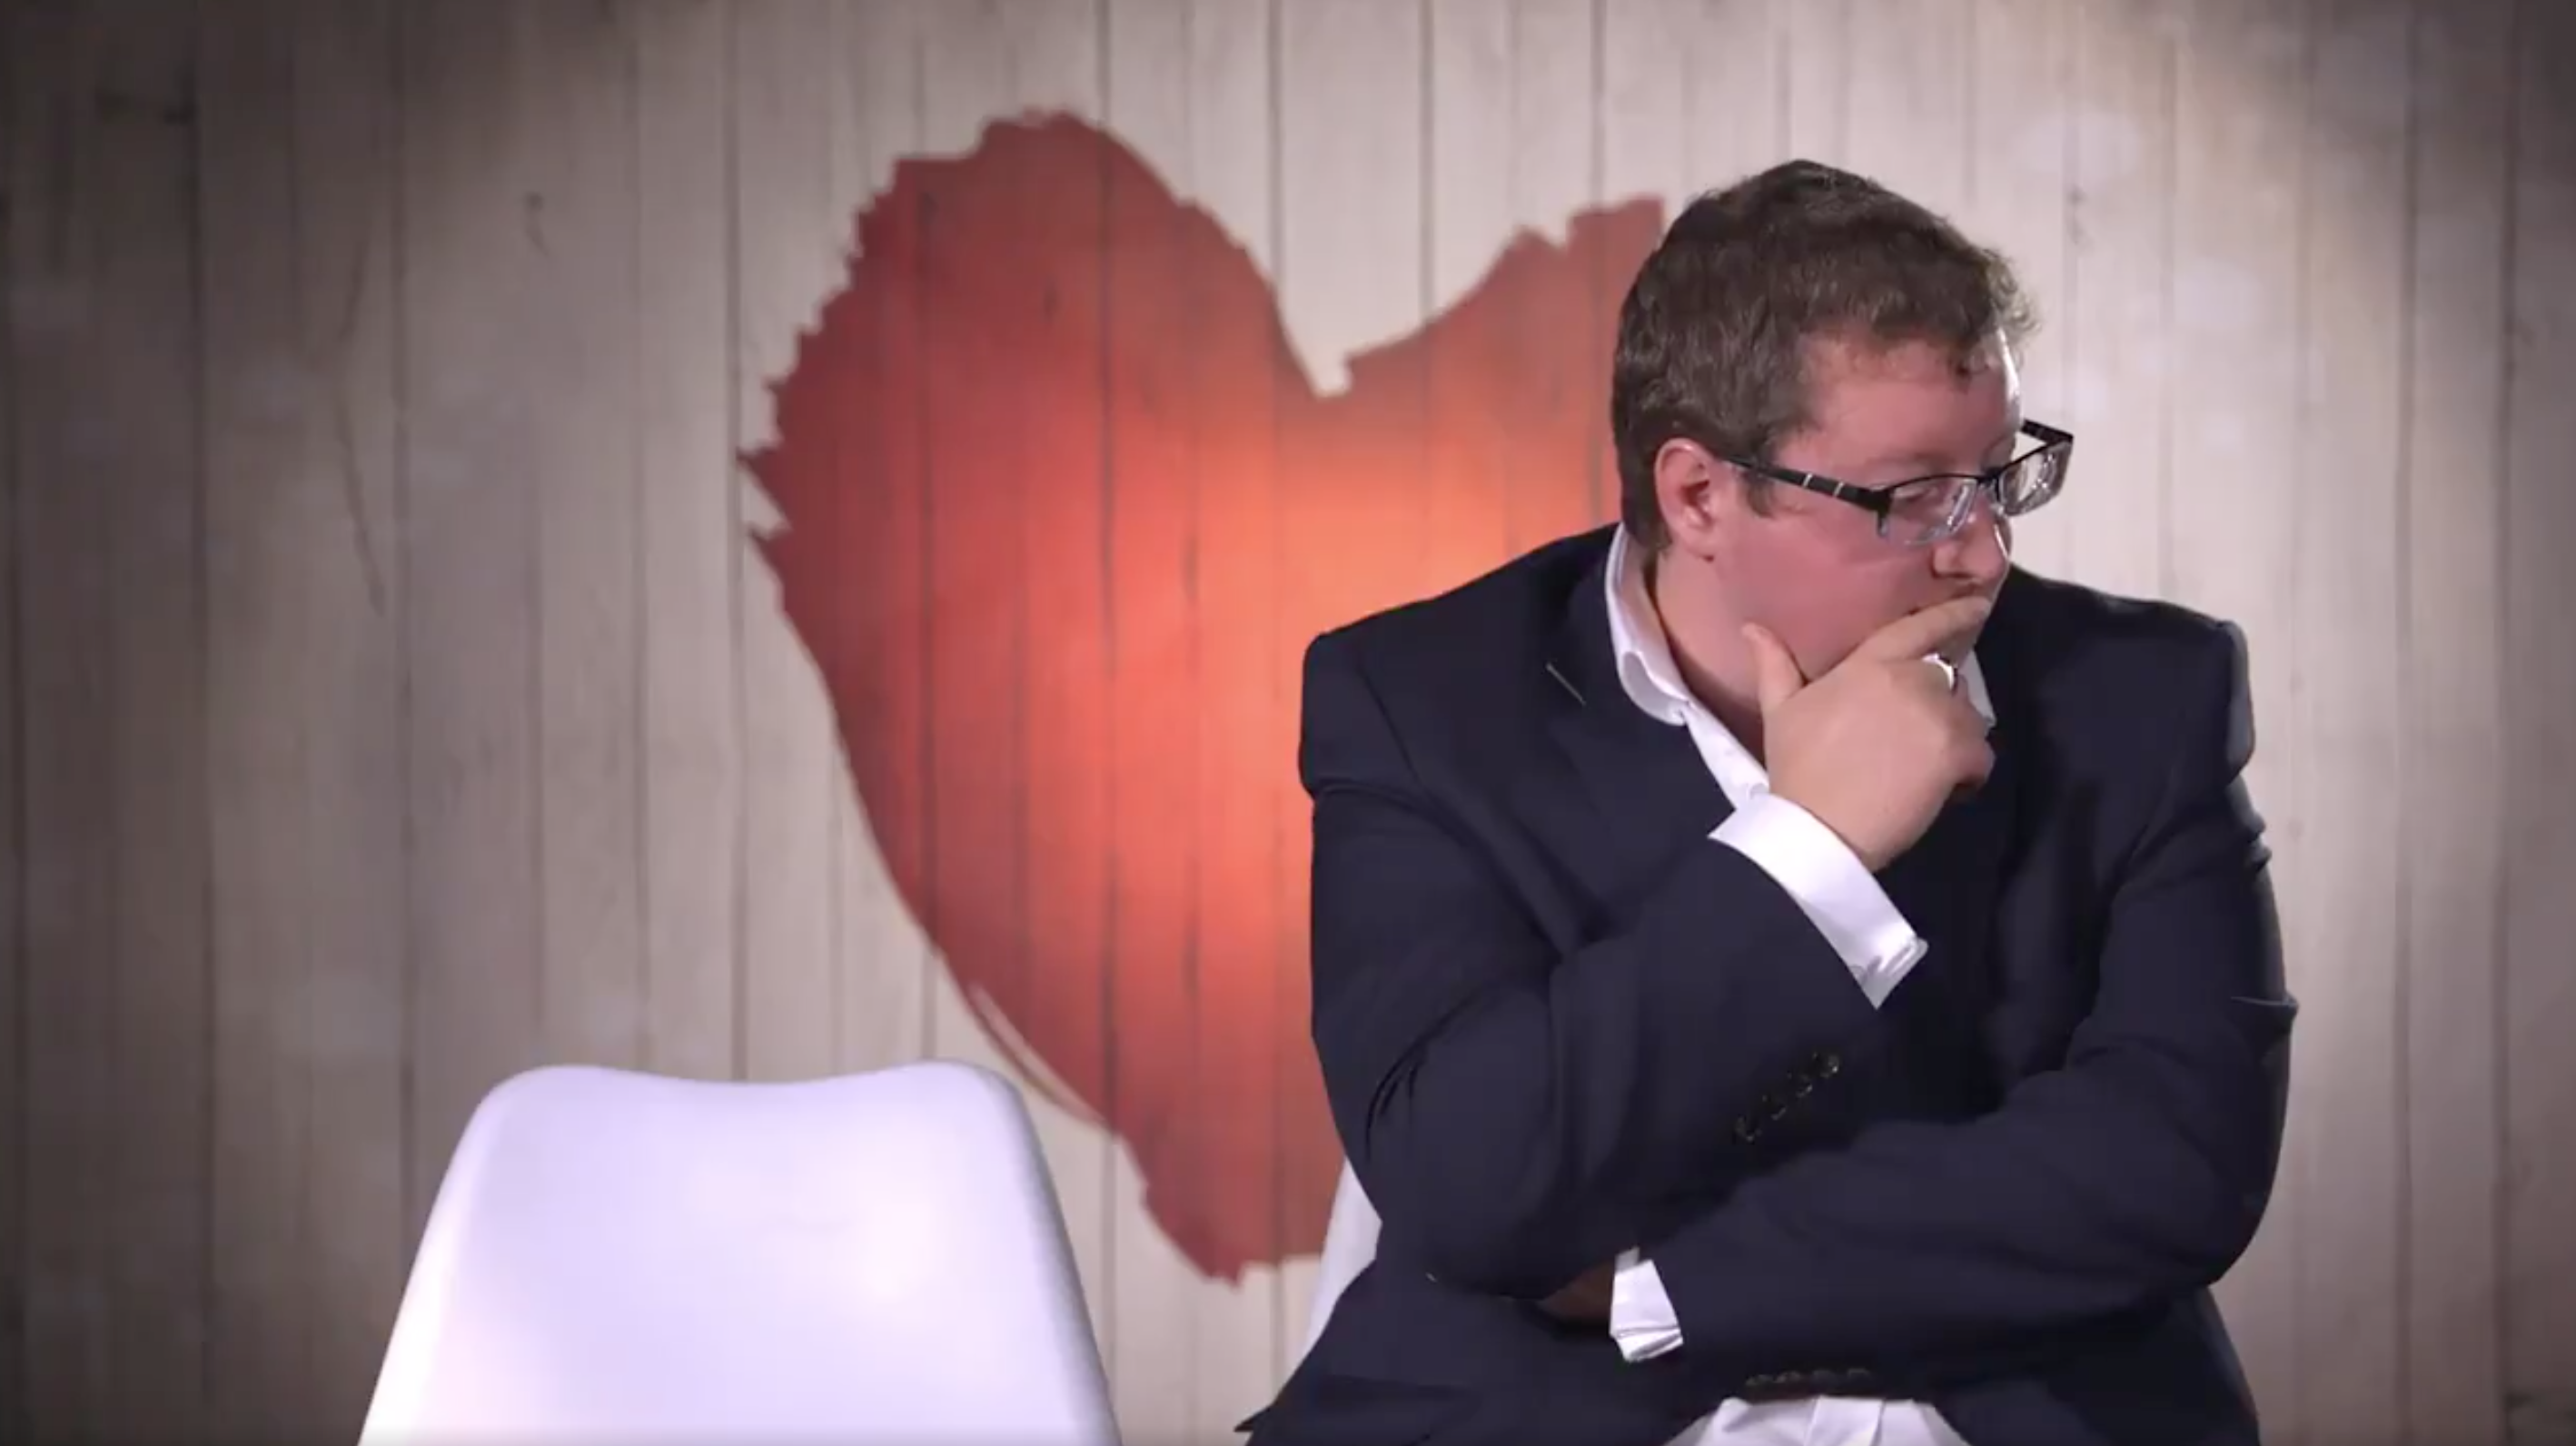 First Dates: Returning nice guy James rejected AGAIN